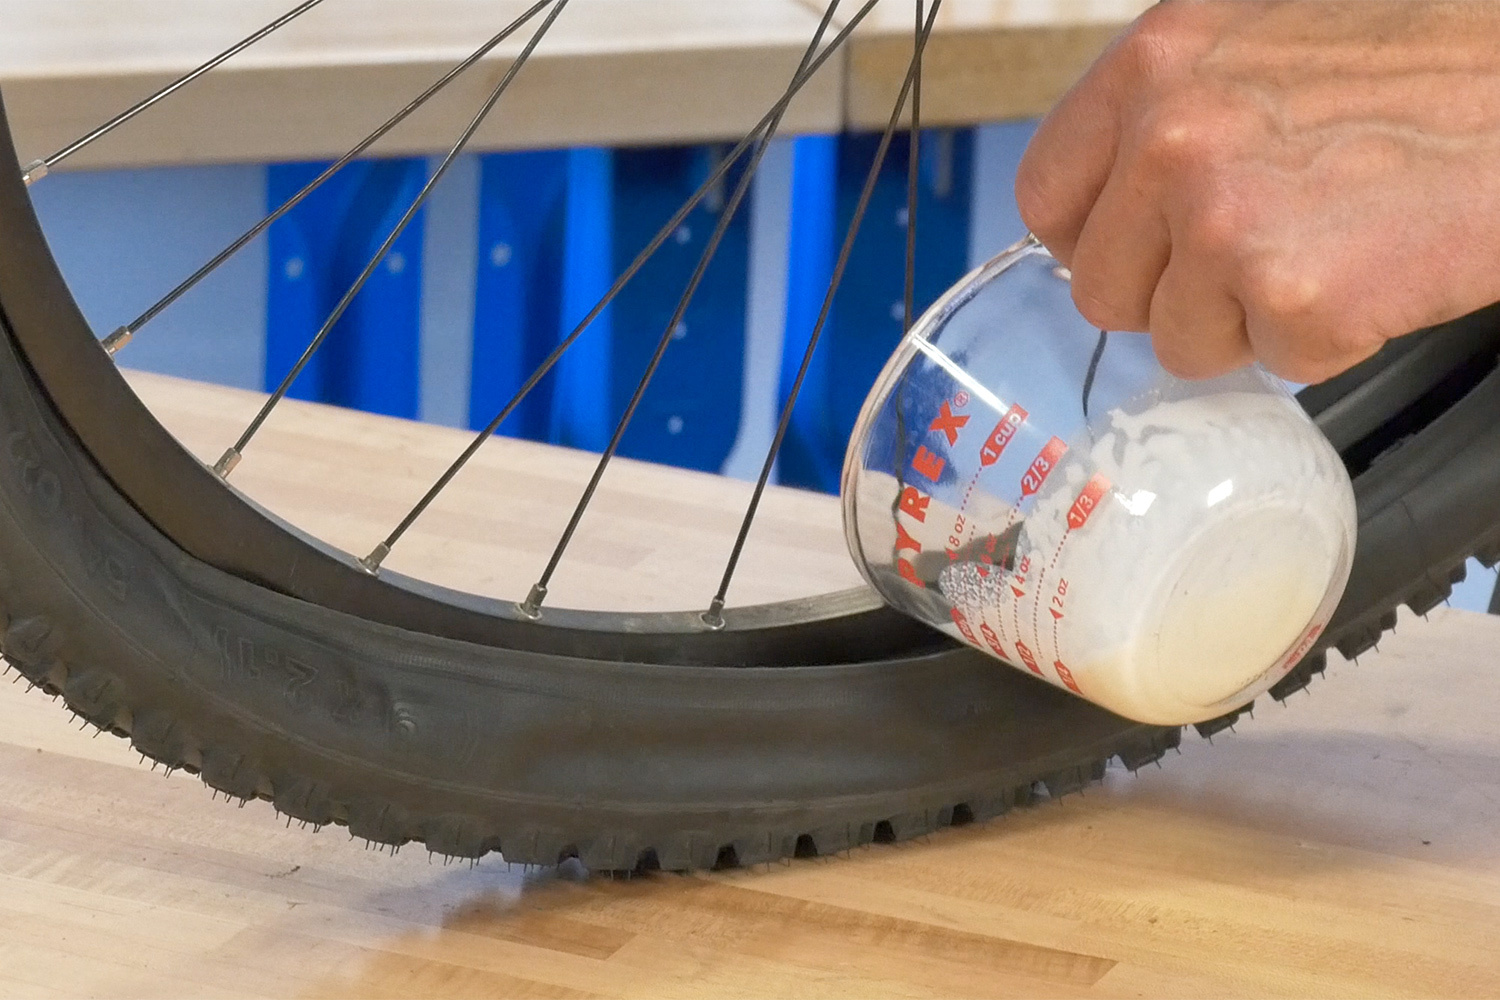 Tubeless Tire Removal and Installation | Park Tool